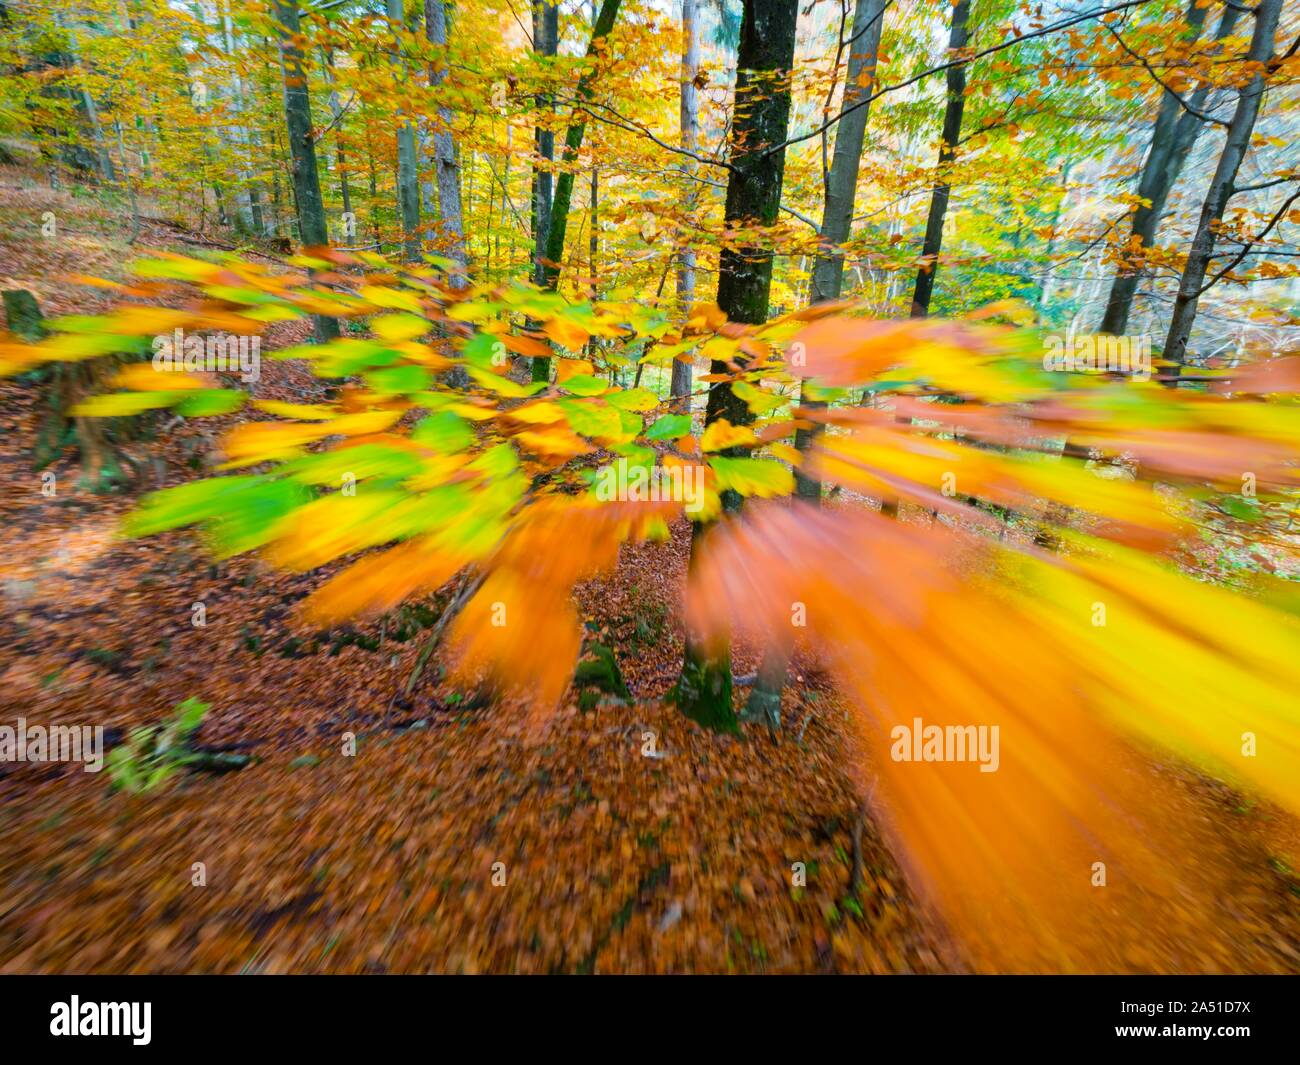 Vivid rich colors of Autumn Fall yearly season in forest near Fuzine in Croatia motion-like intentionally partial-blurry imagery portraying speed Stock Photo